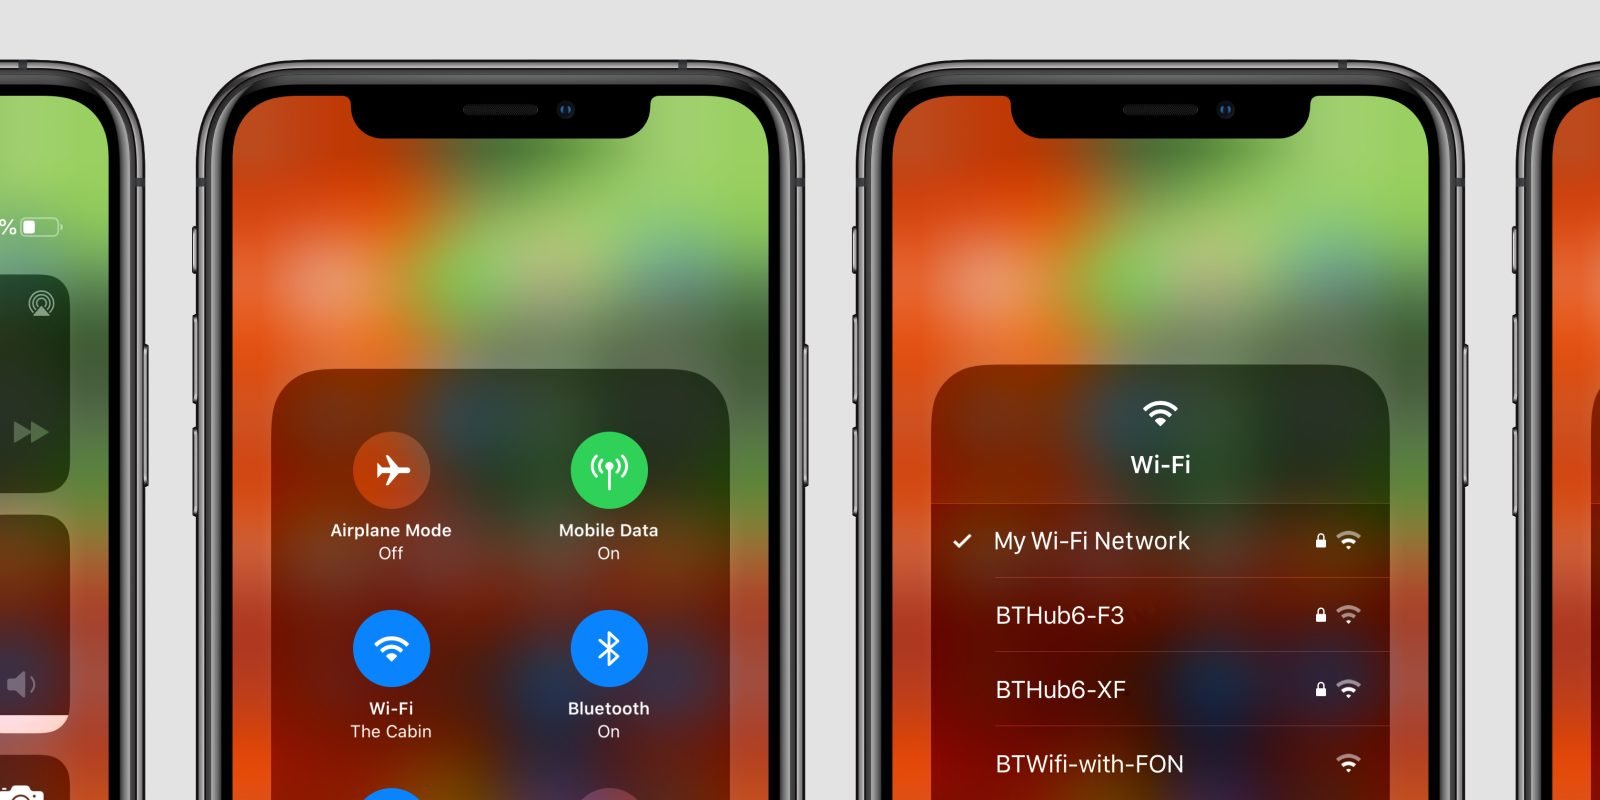 iOS 13: How to switch WiFi networks from Control Center